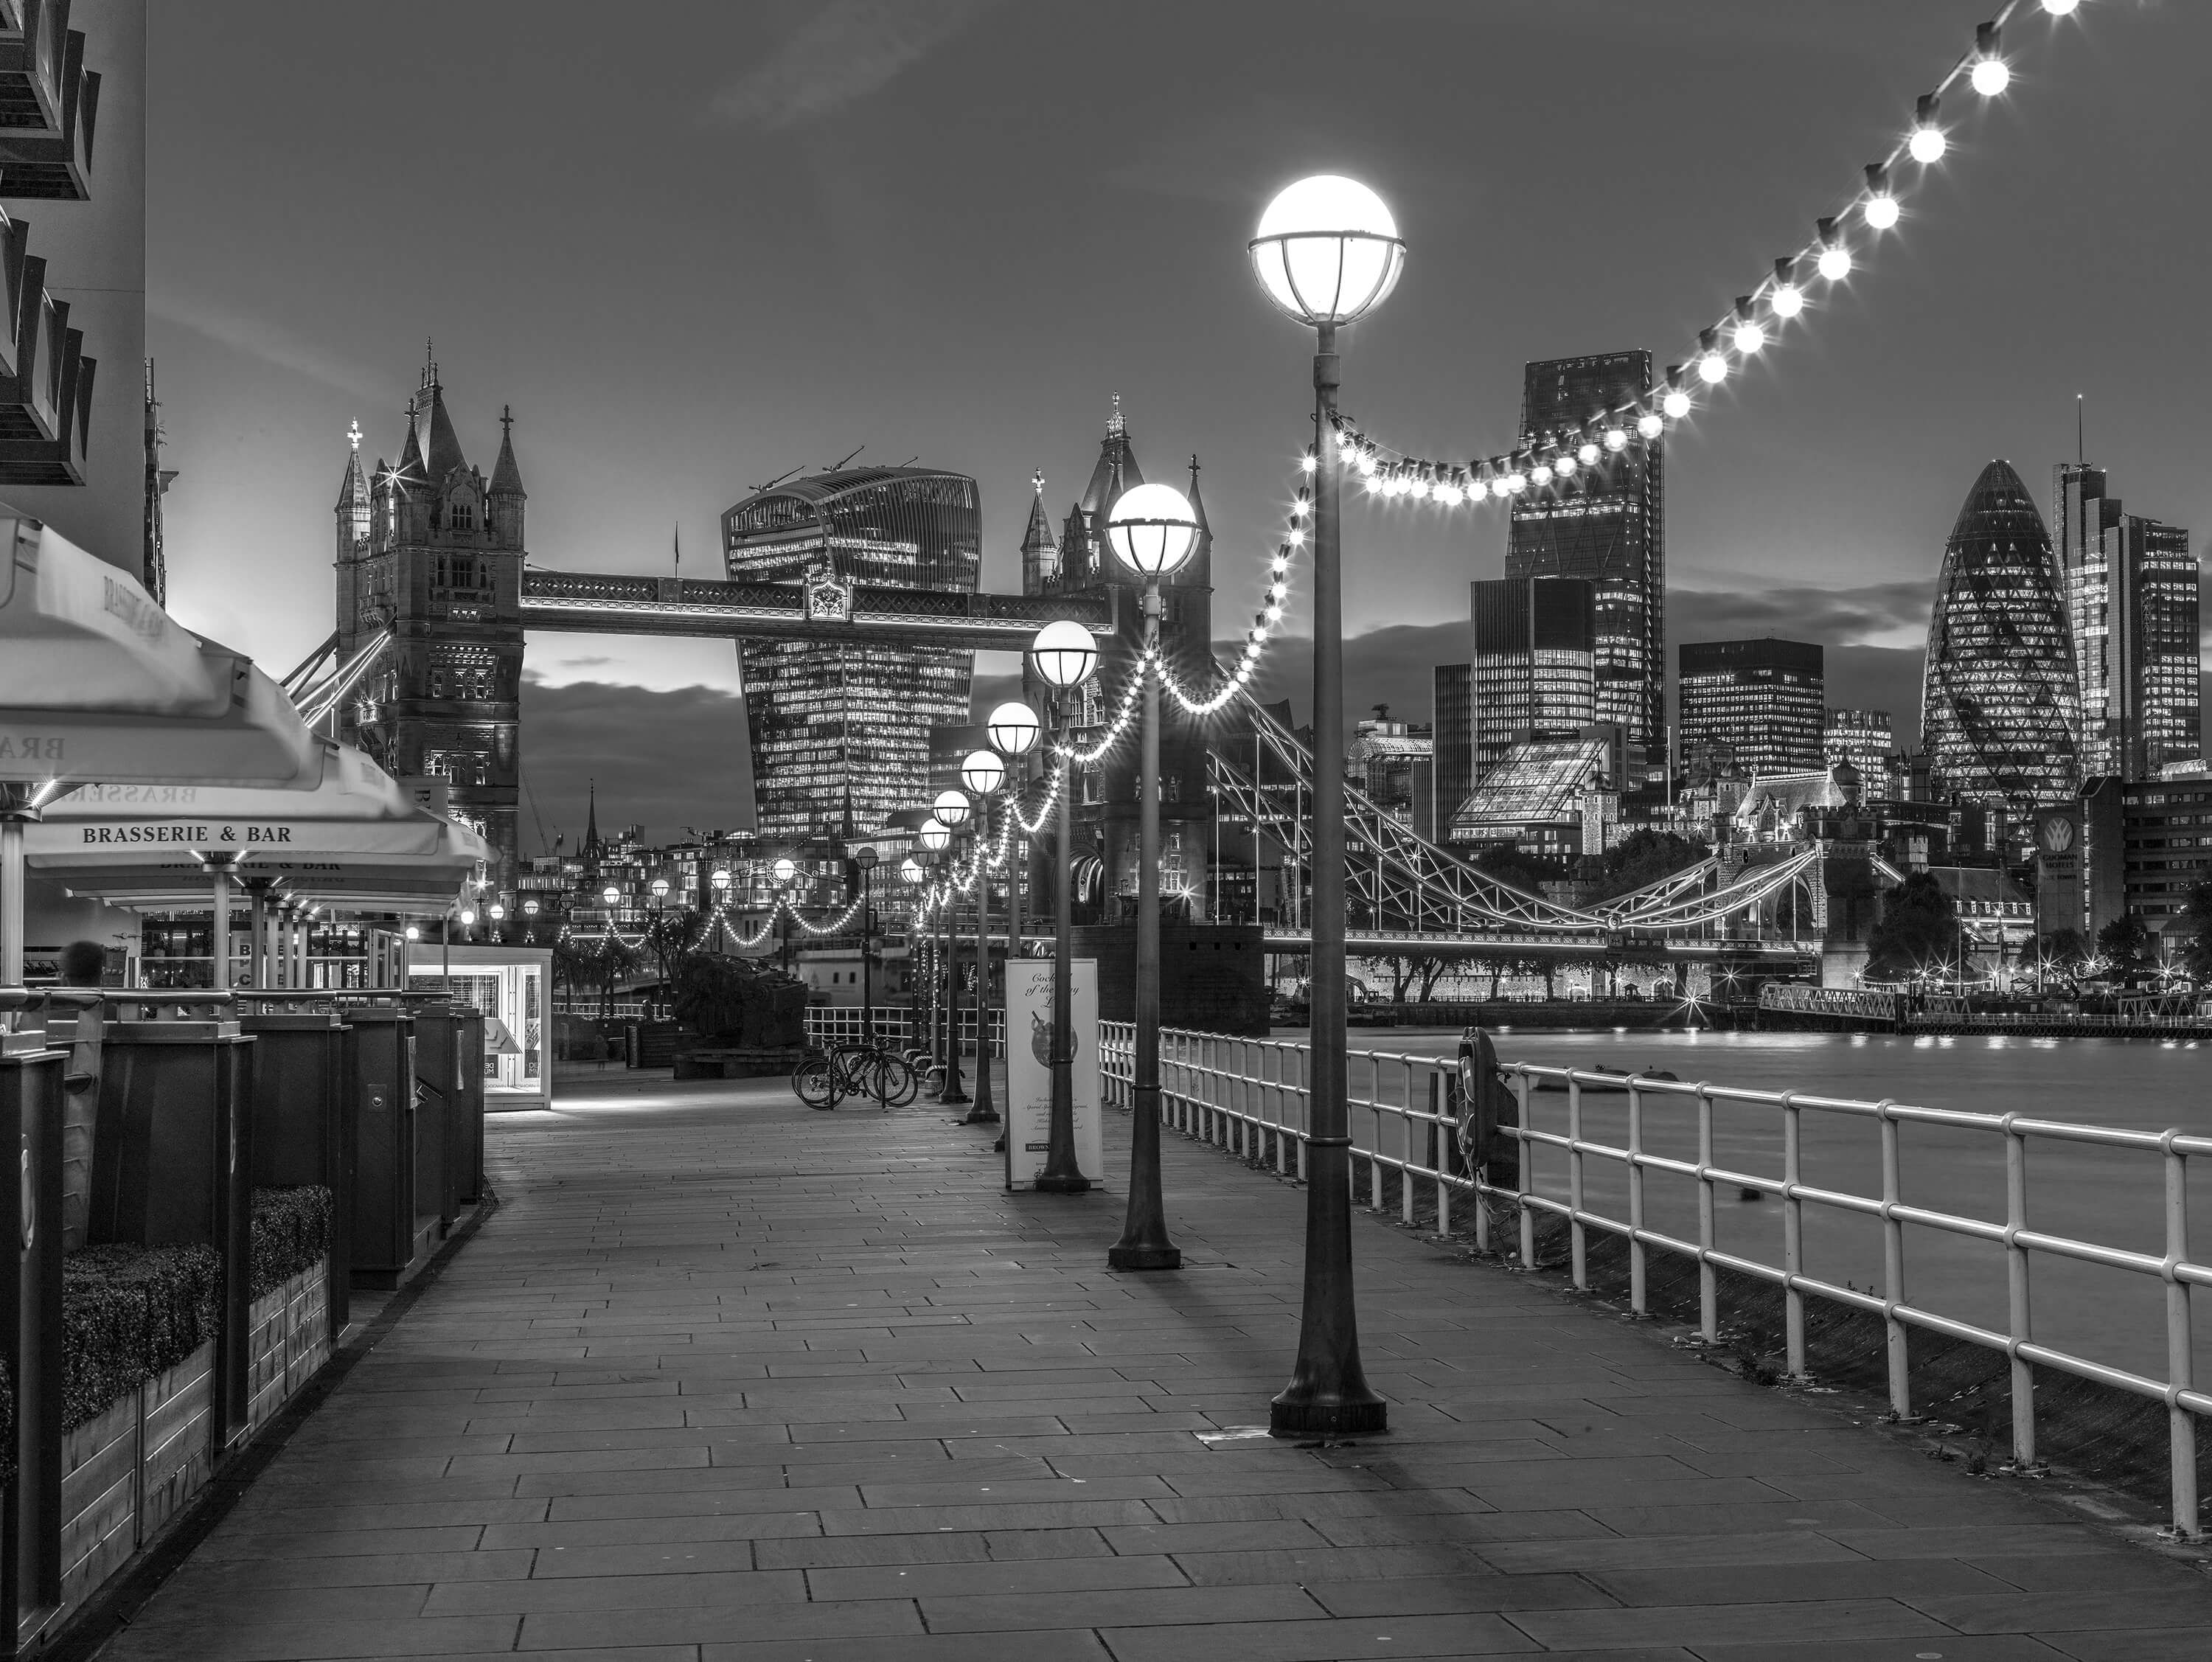 The road to Tower Bridge